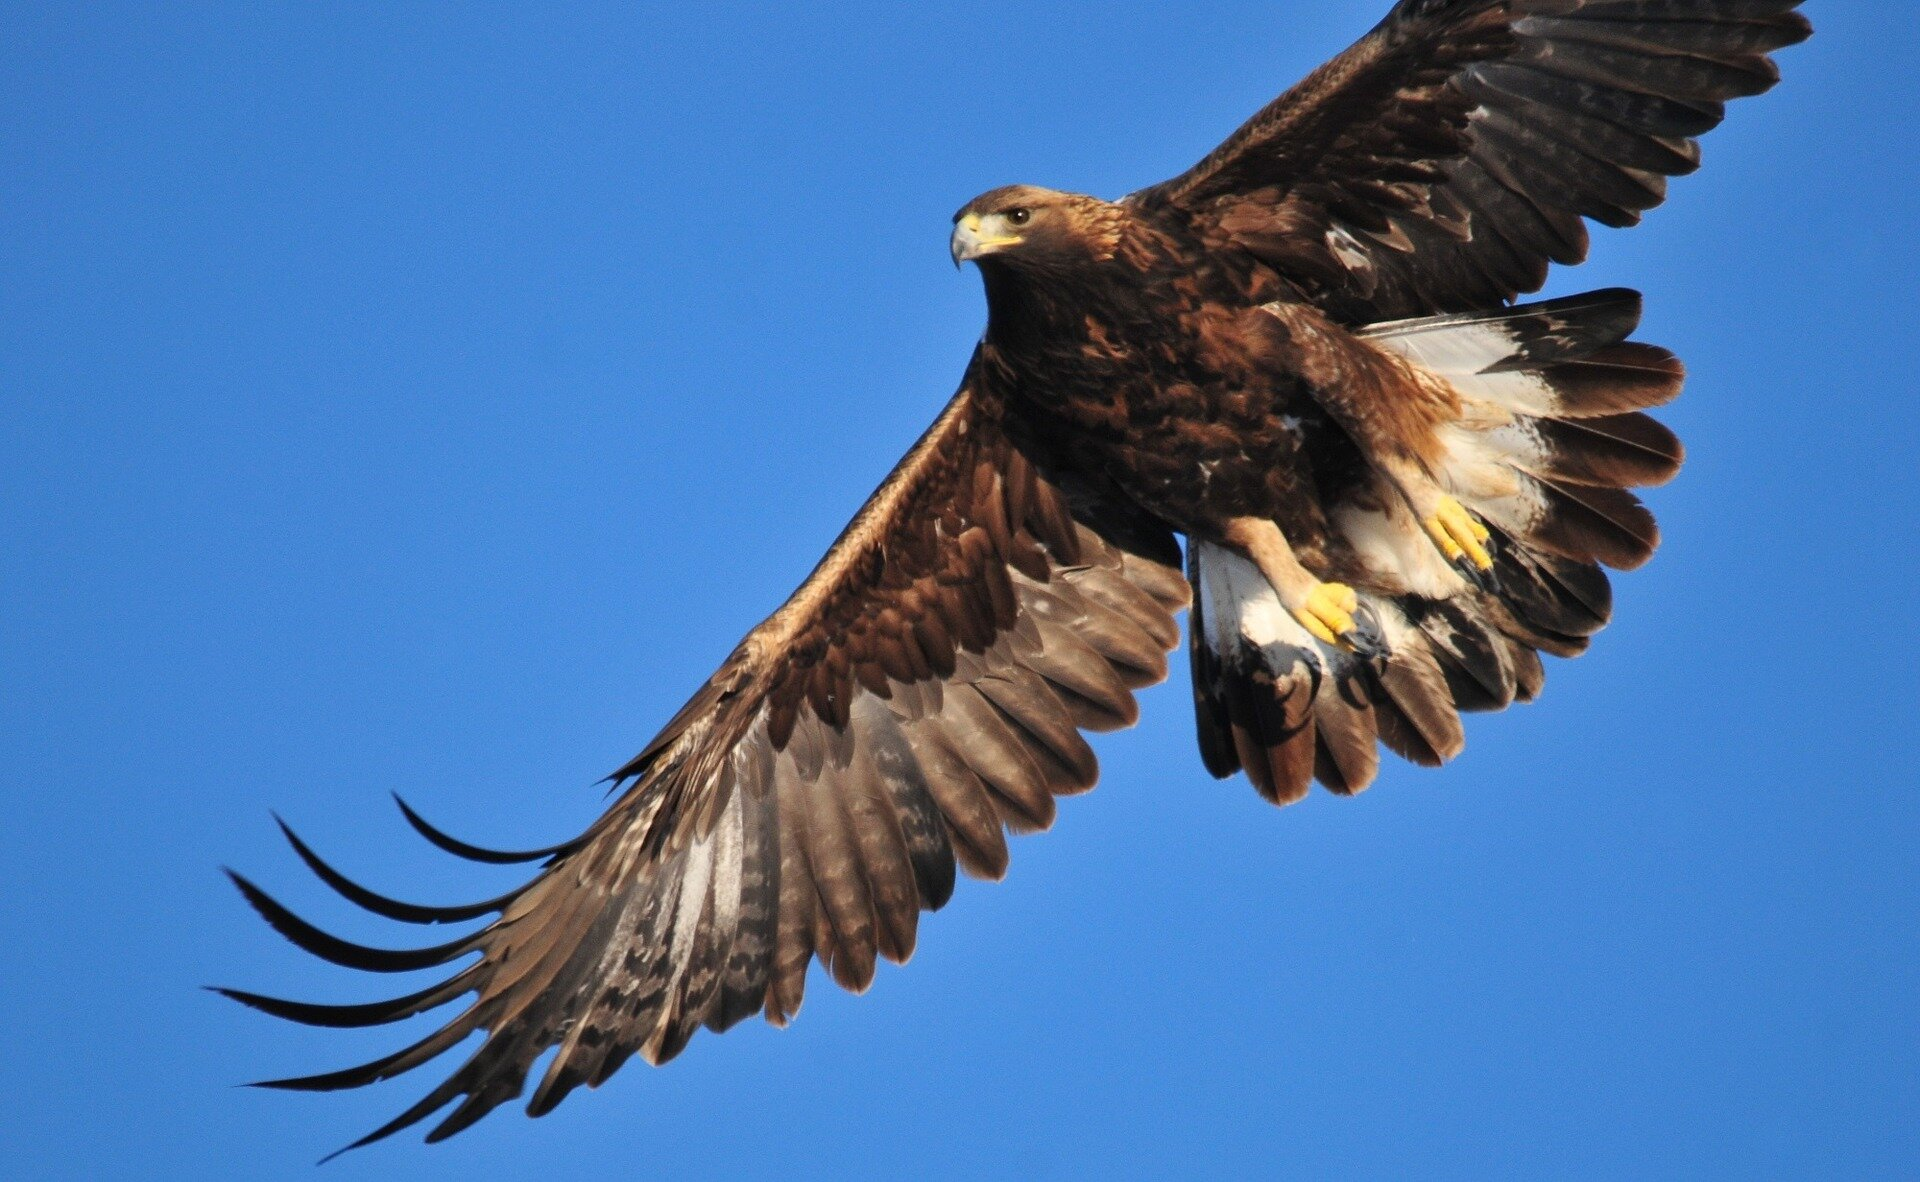 golden-eagle-1665317_1920.jpg